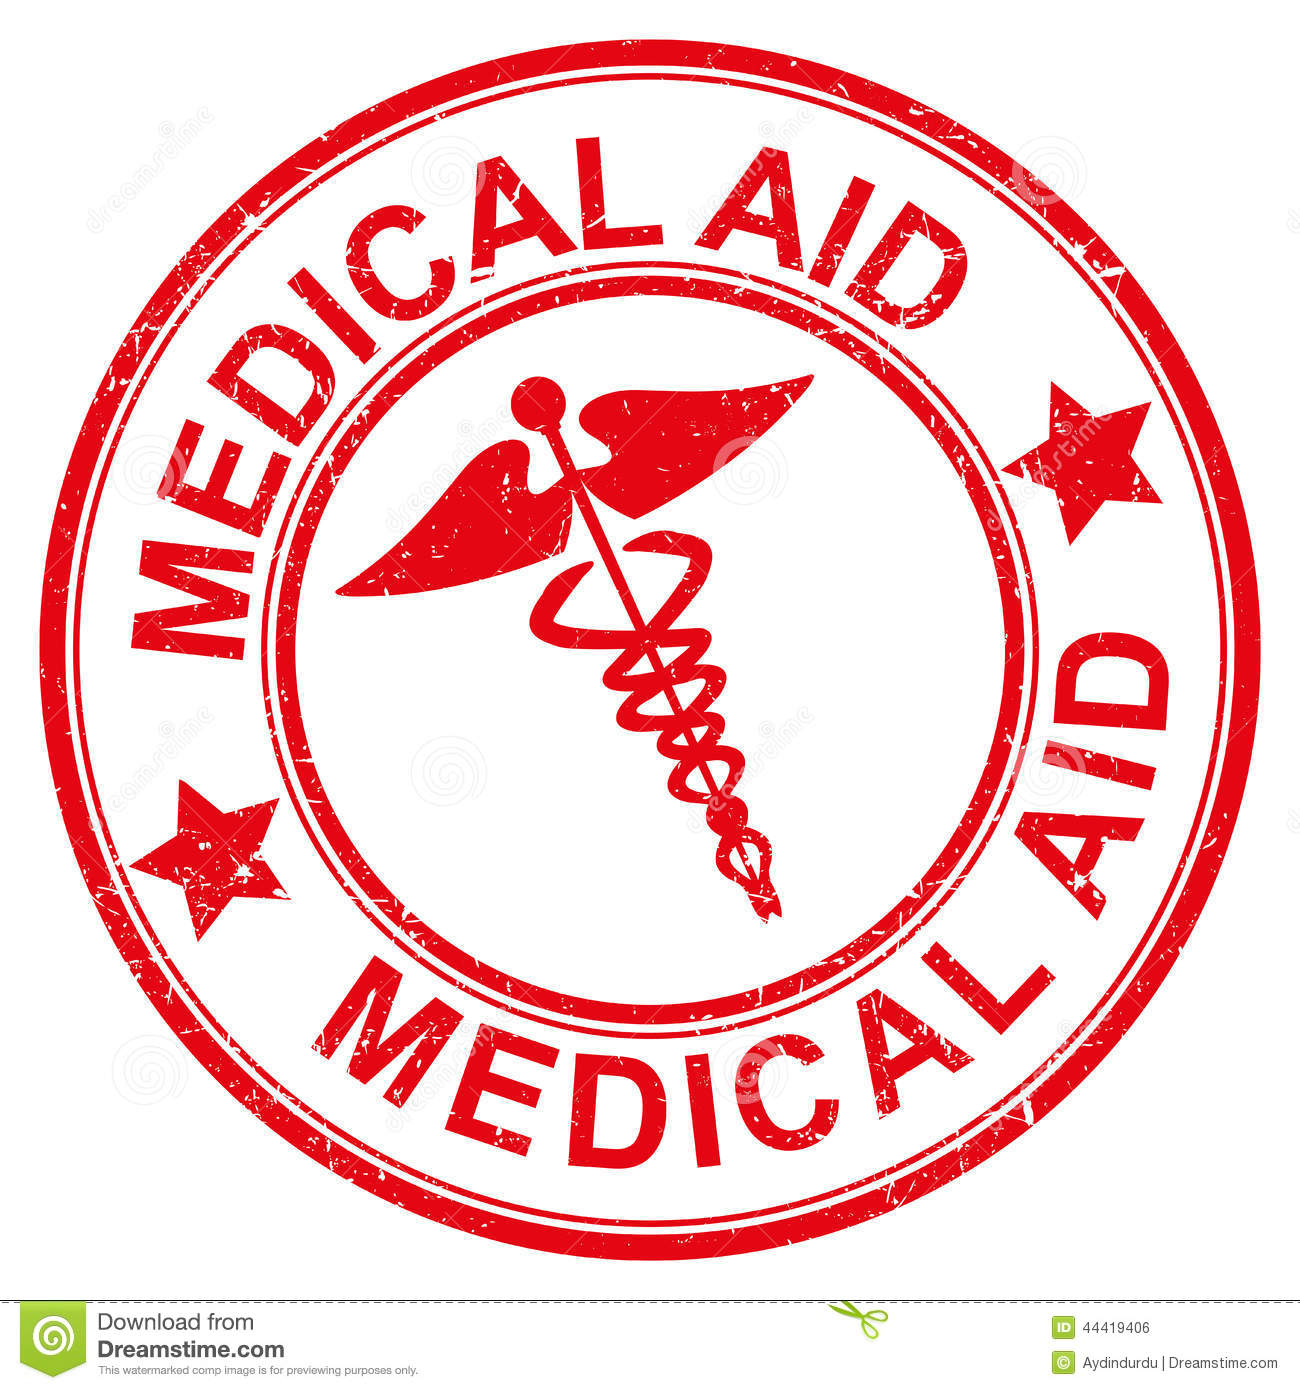 Illustration of a red medical aid icon on a white background.